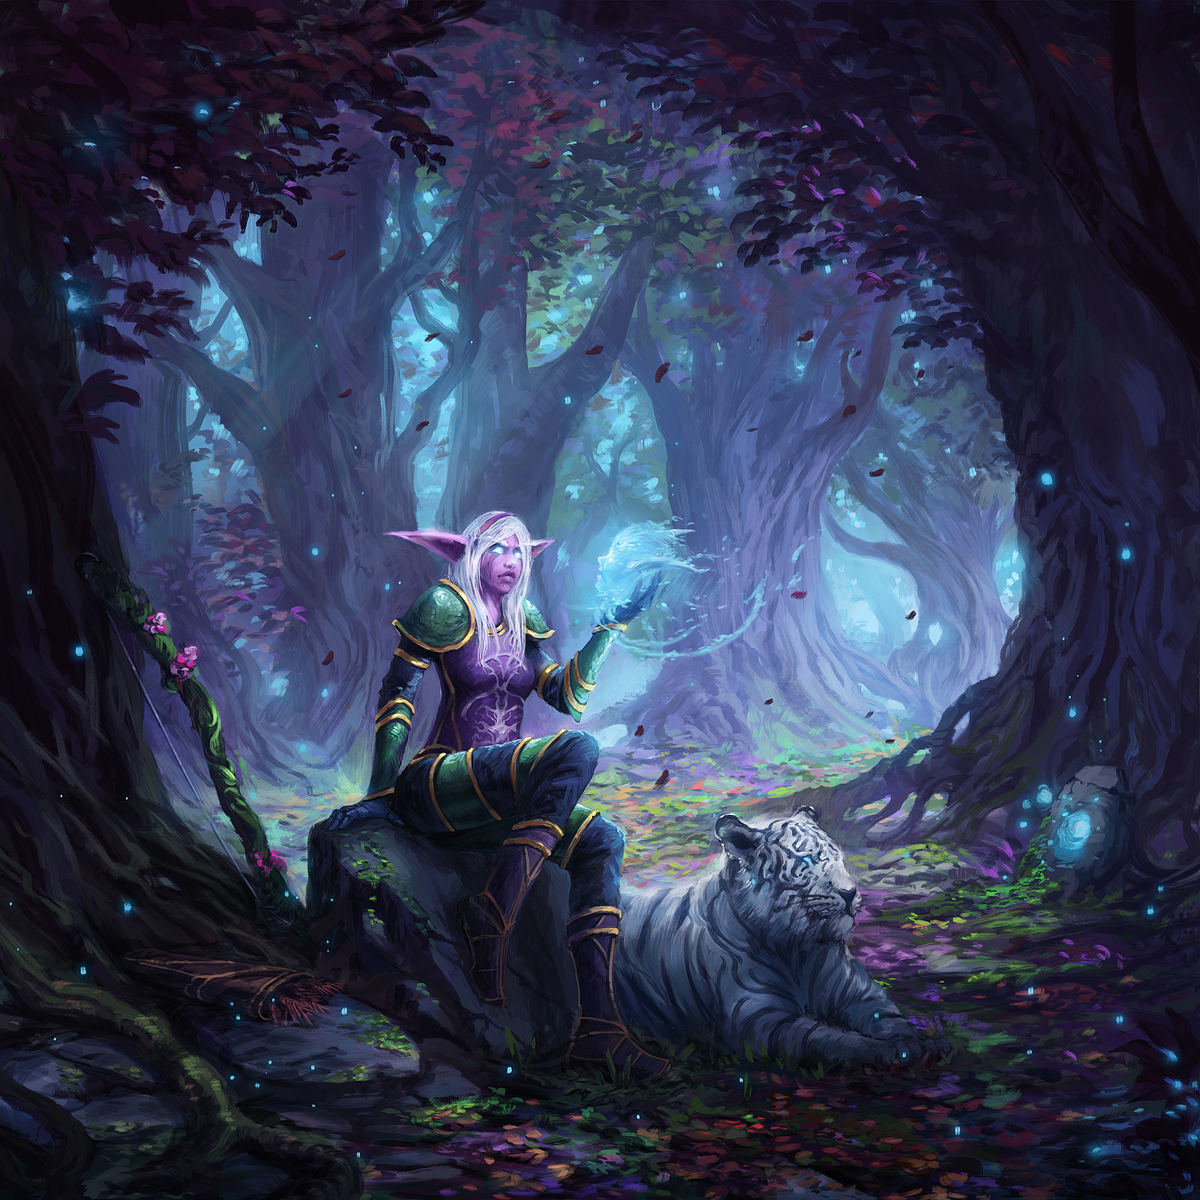 Nightelf explore nightelf on deviantart night elf huntress by jjcanvas nvjuhfo Choice Image